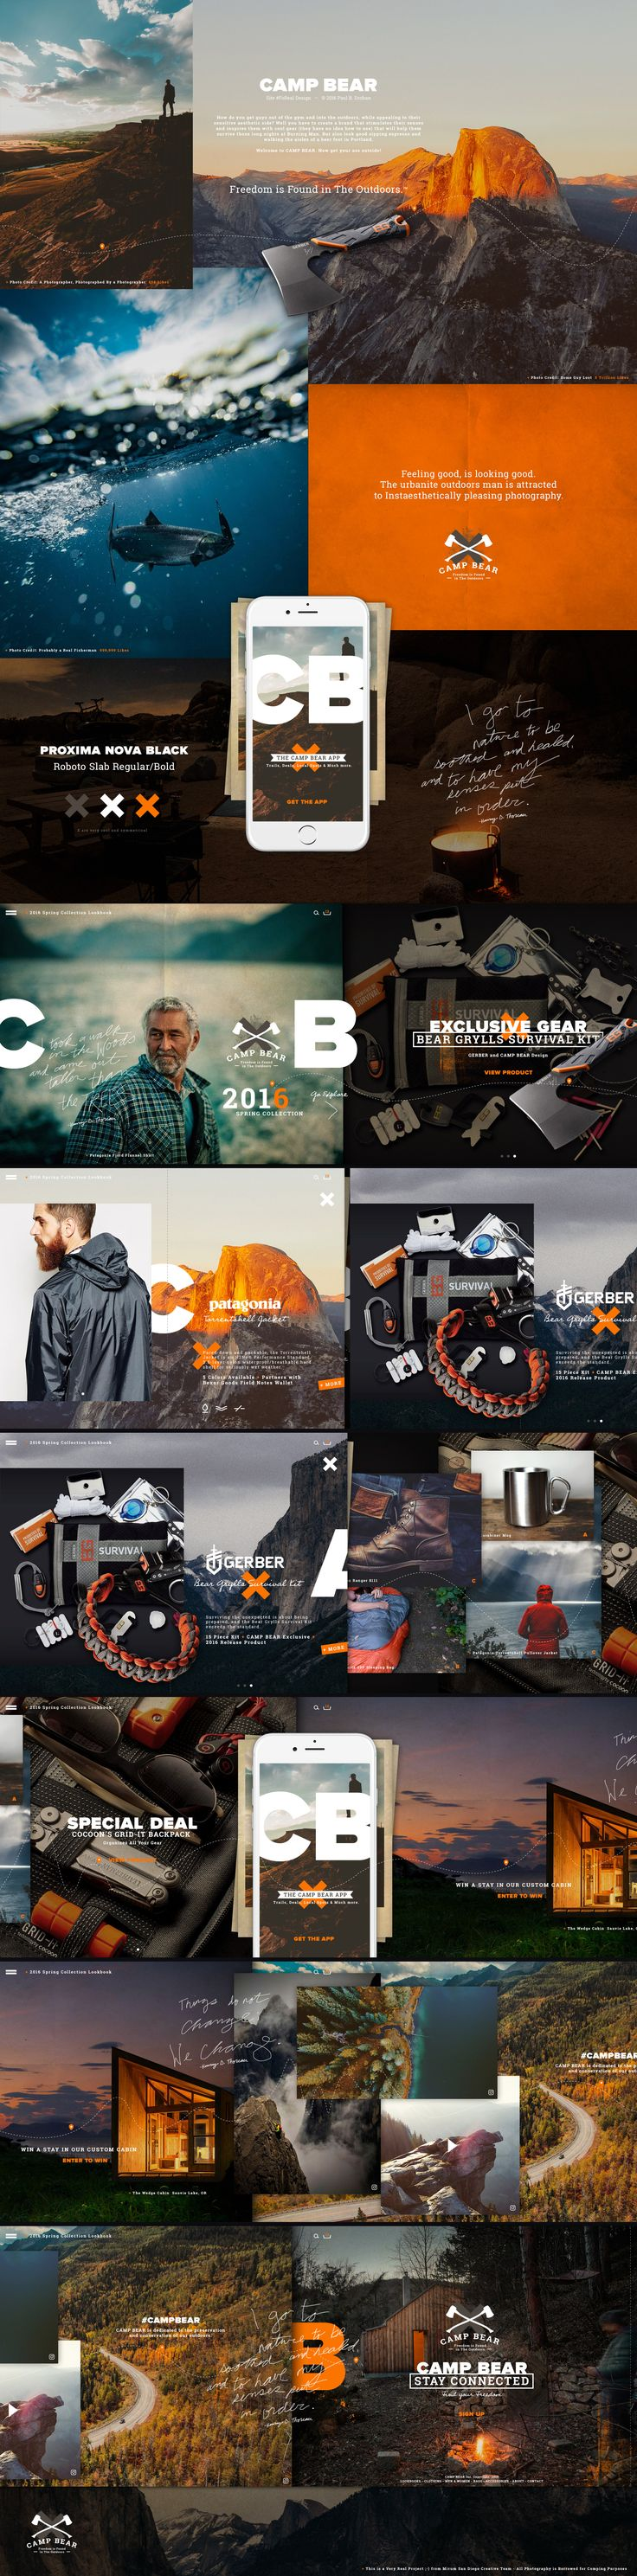 CAMP BEAR is a outdoor shopping brand for Real Men. Designed at Mirum San Diego  #sitedesign, #interactivedesign, #branding, #website, #responsive, #campaign, #visualdesign, #mazda, #mirum